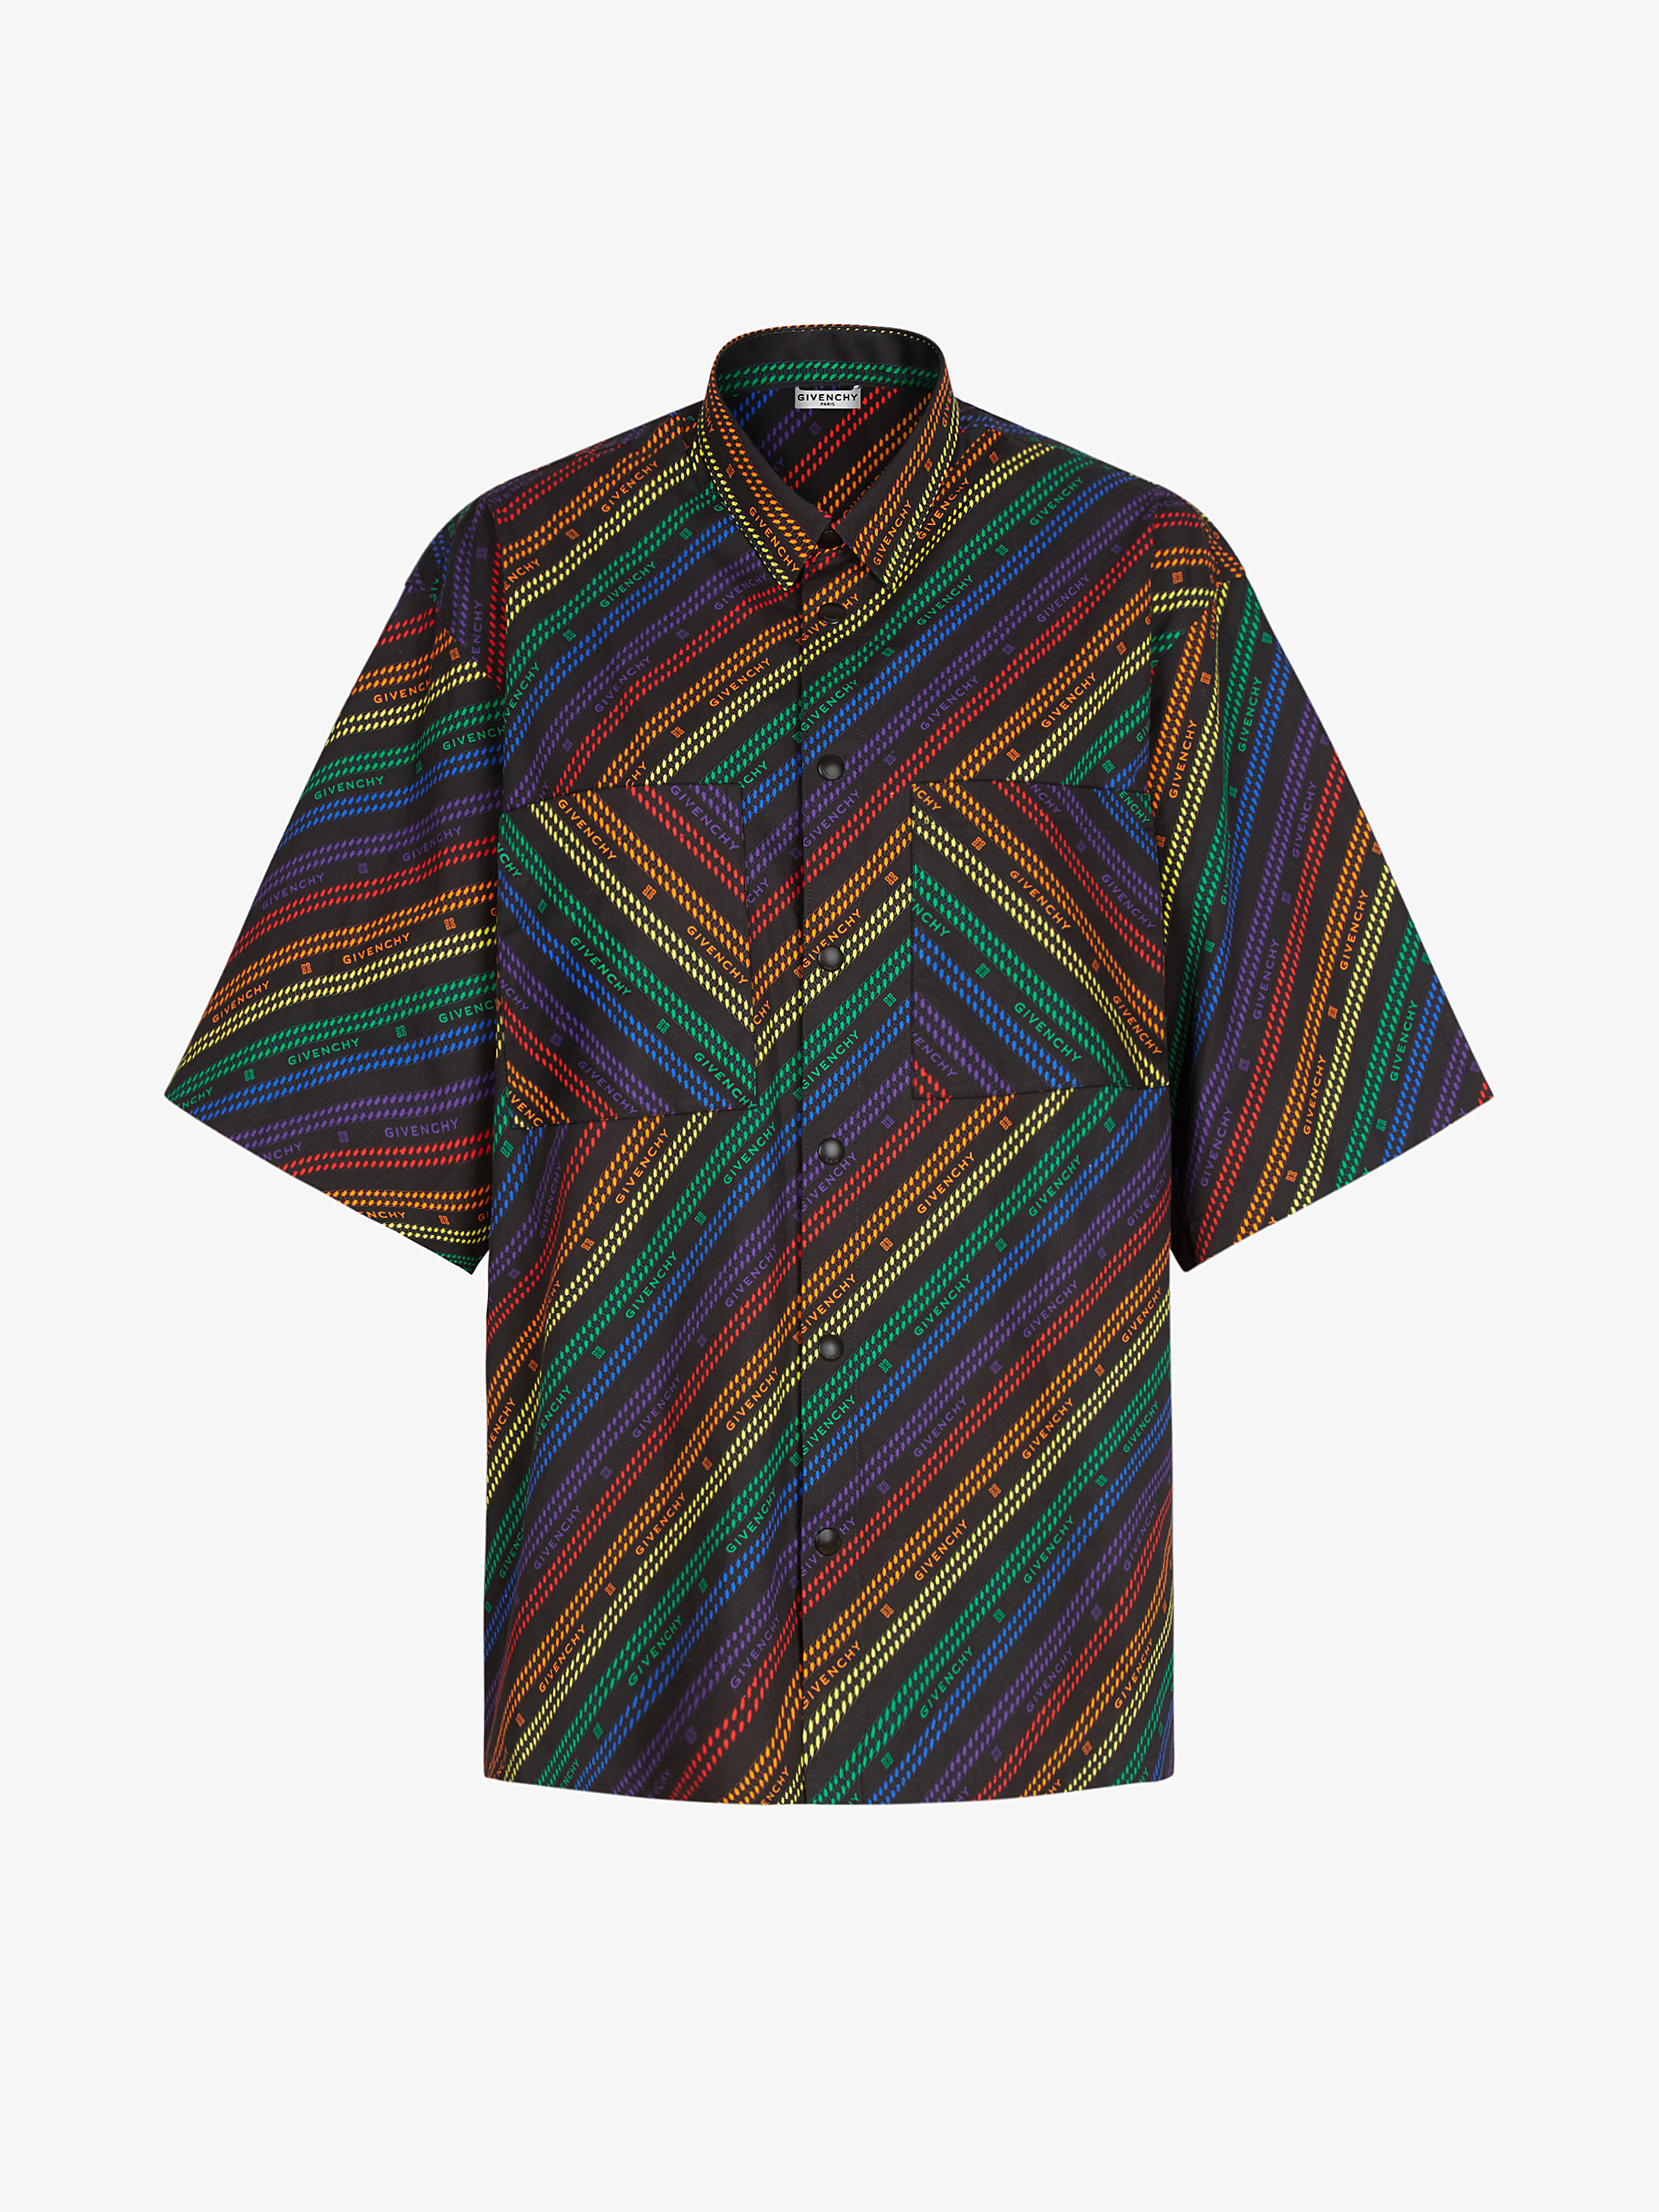 GIVENCHY multicolored Chain printed oversized shirt